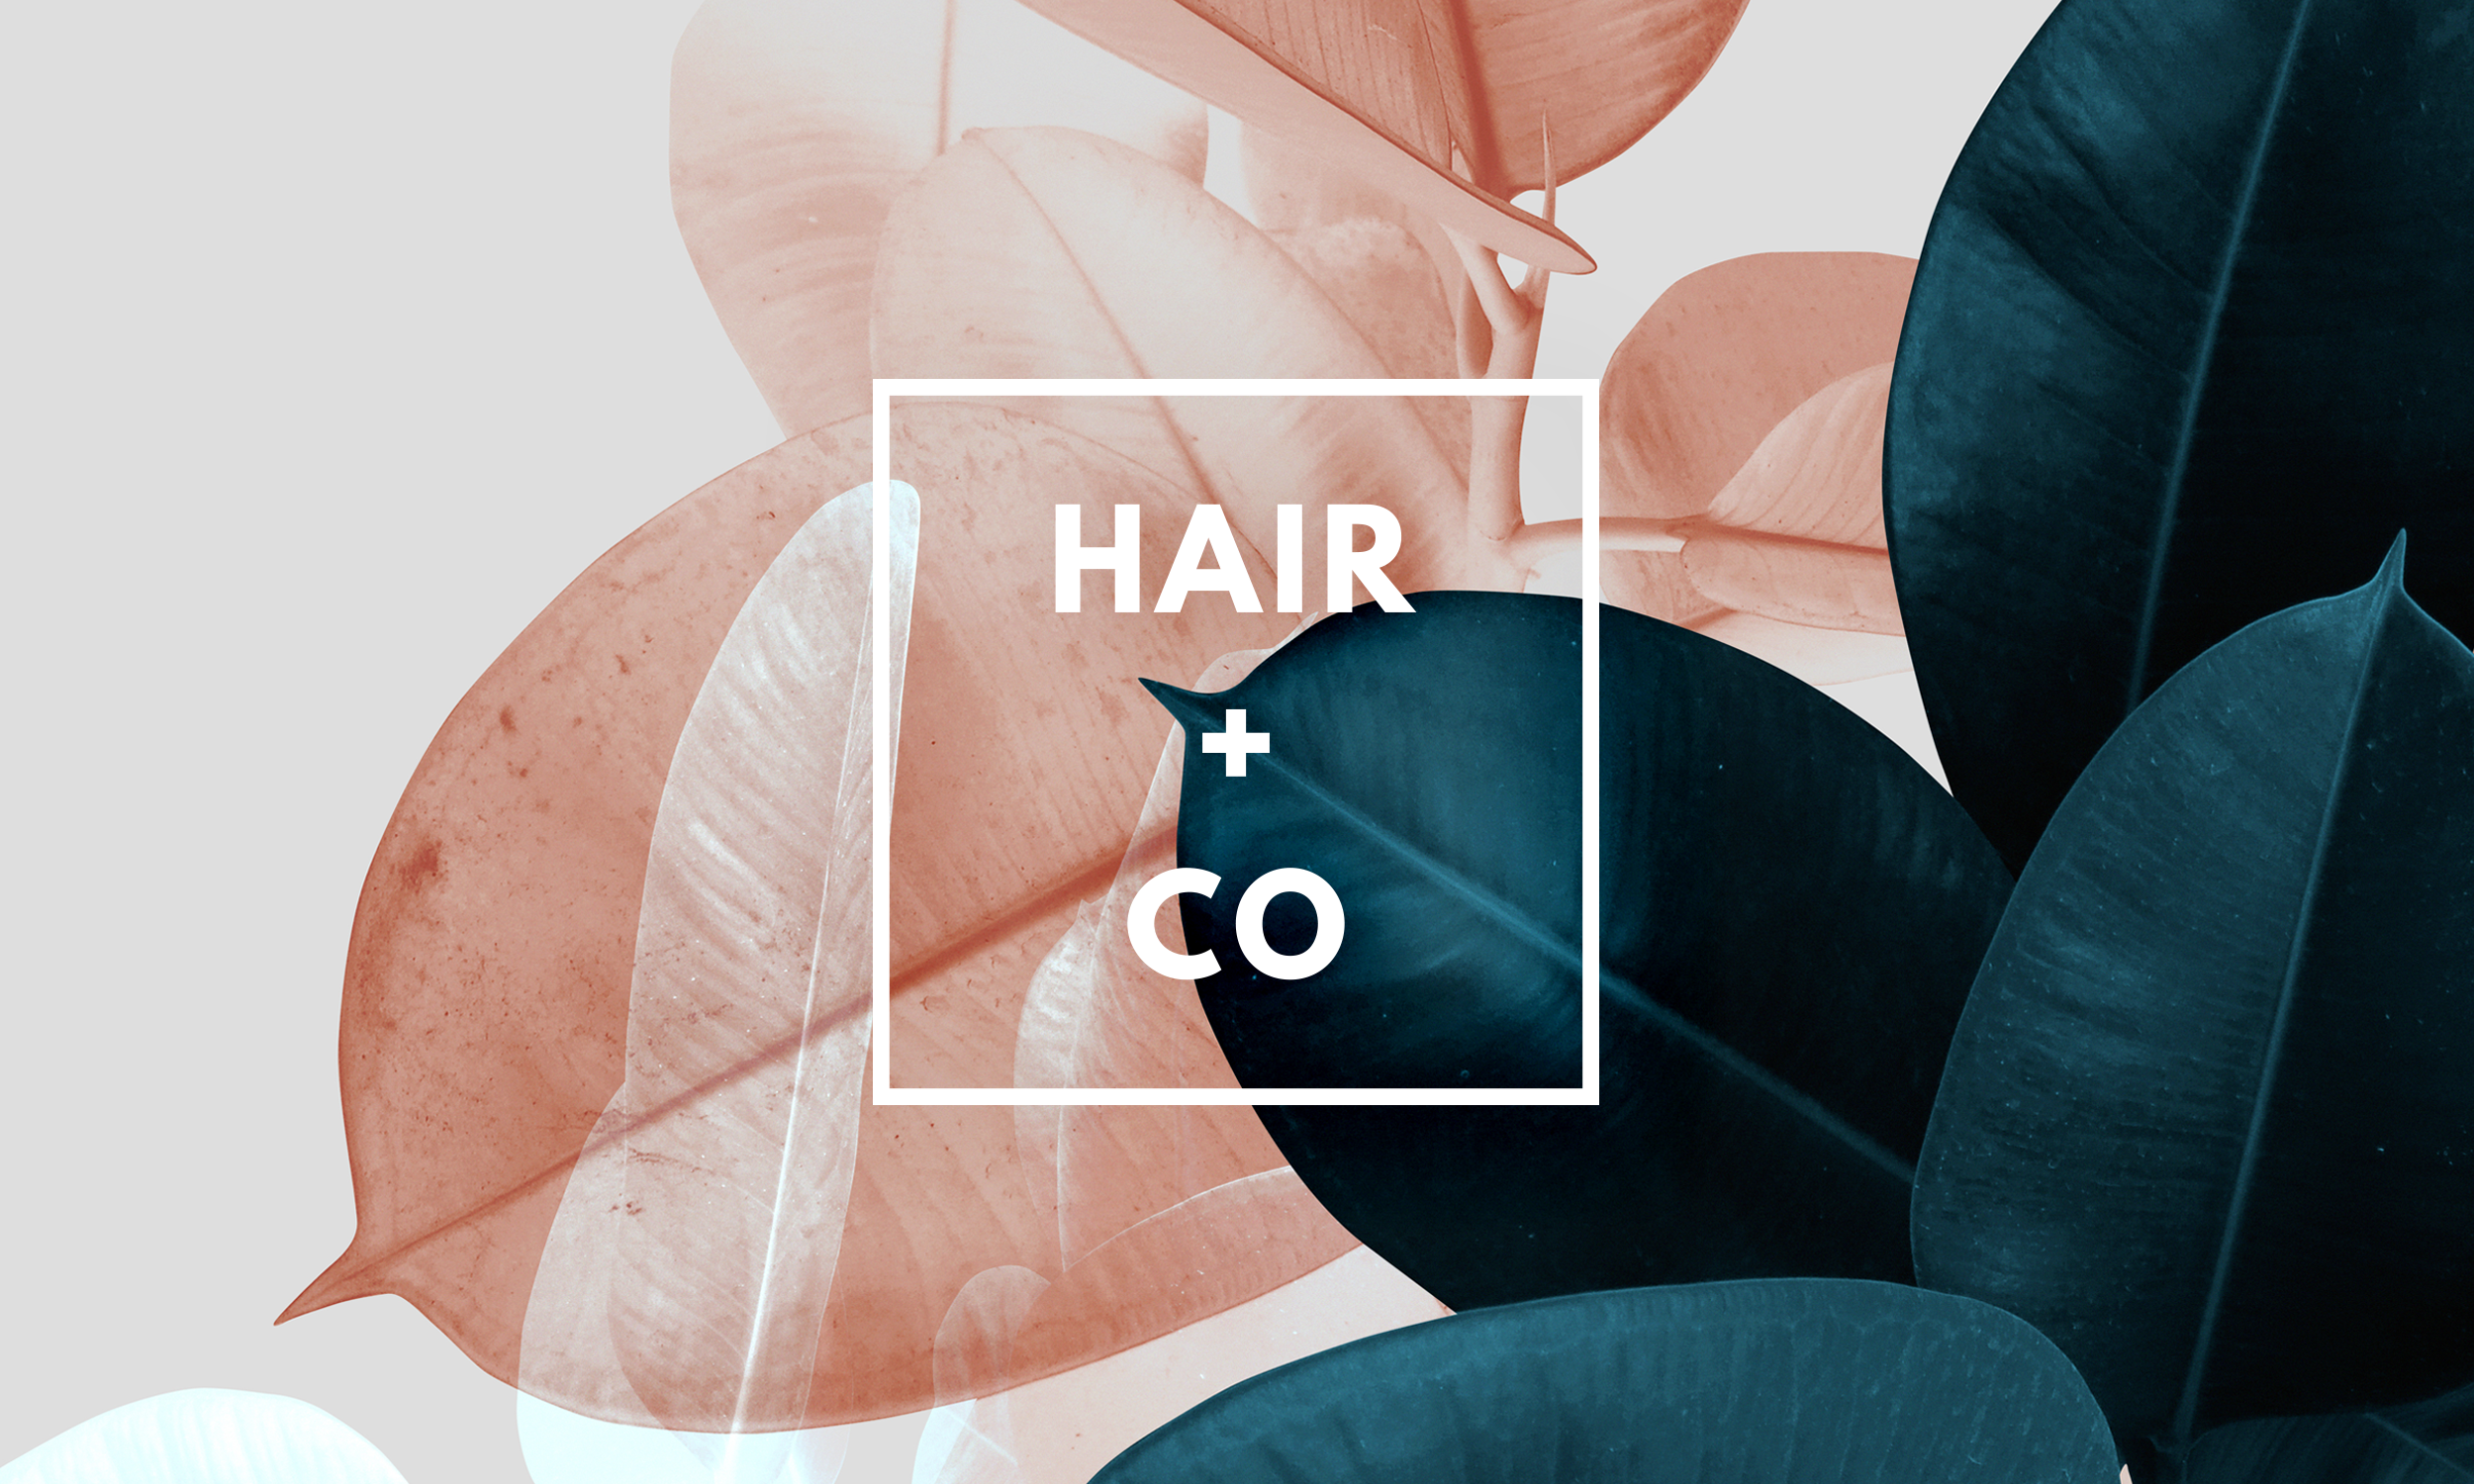 Hair-And-Co-Pensacola-FL-Home-1.png